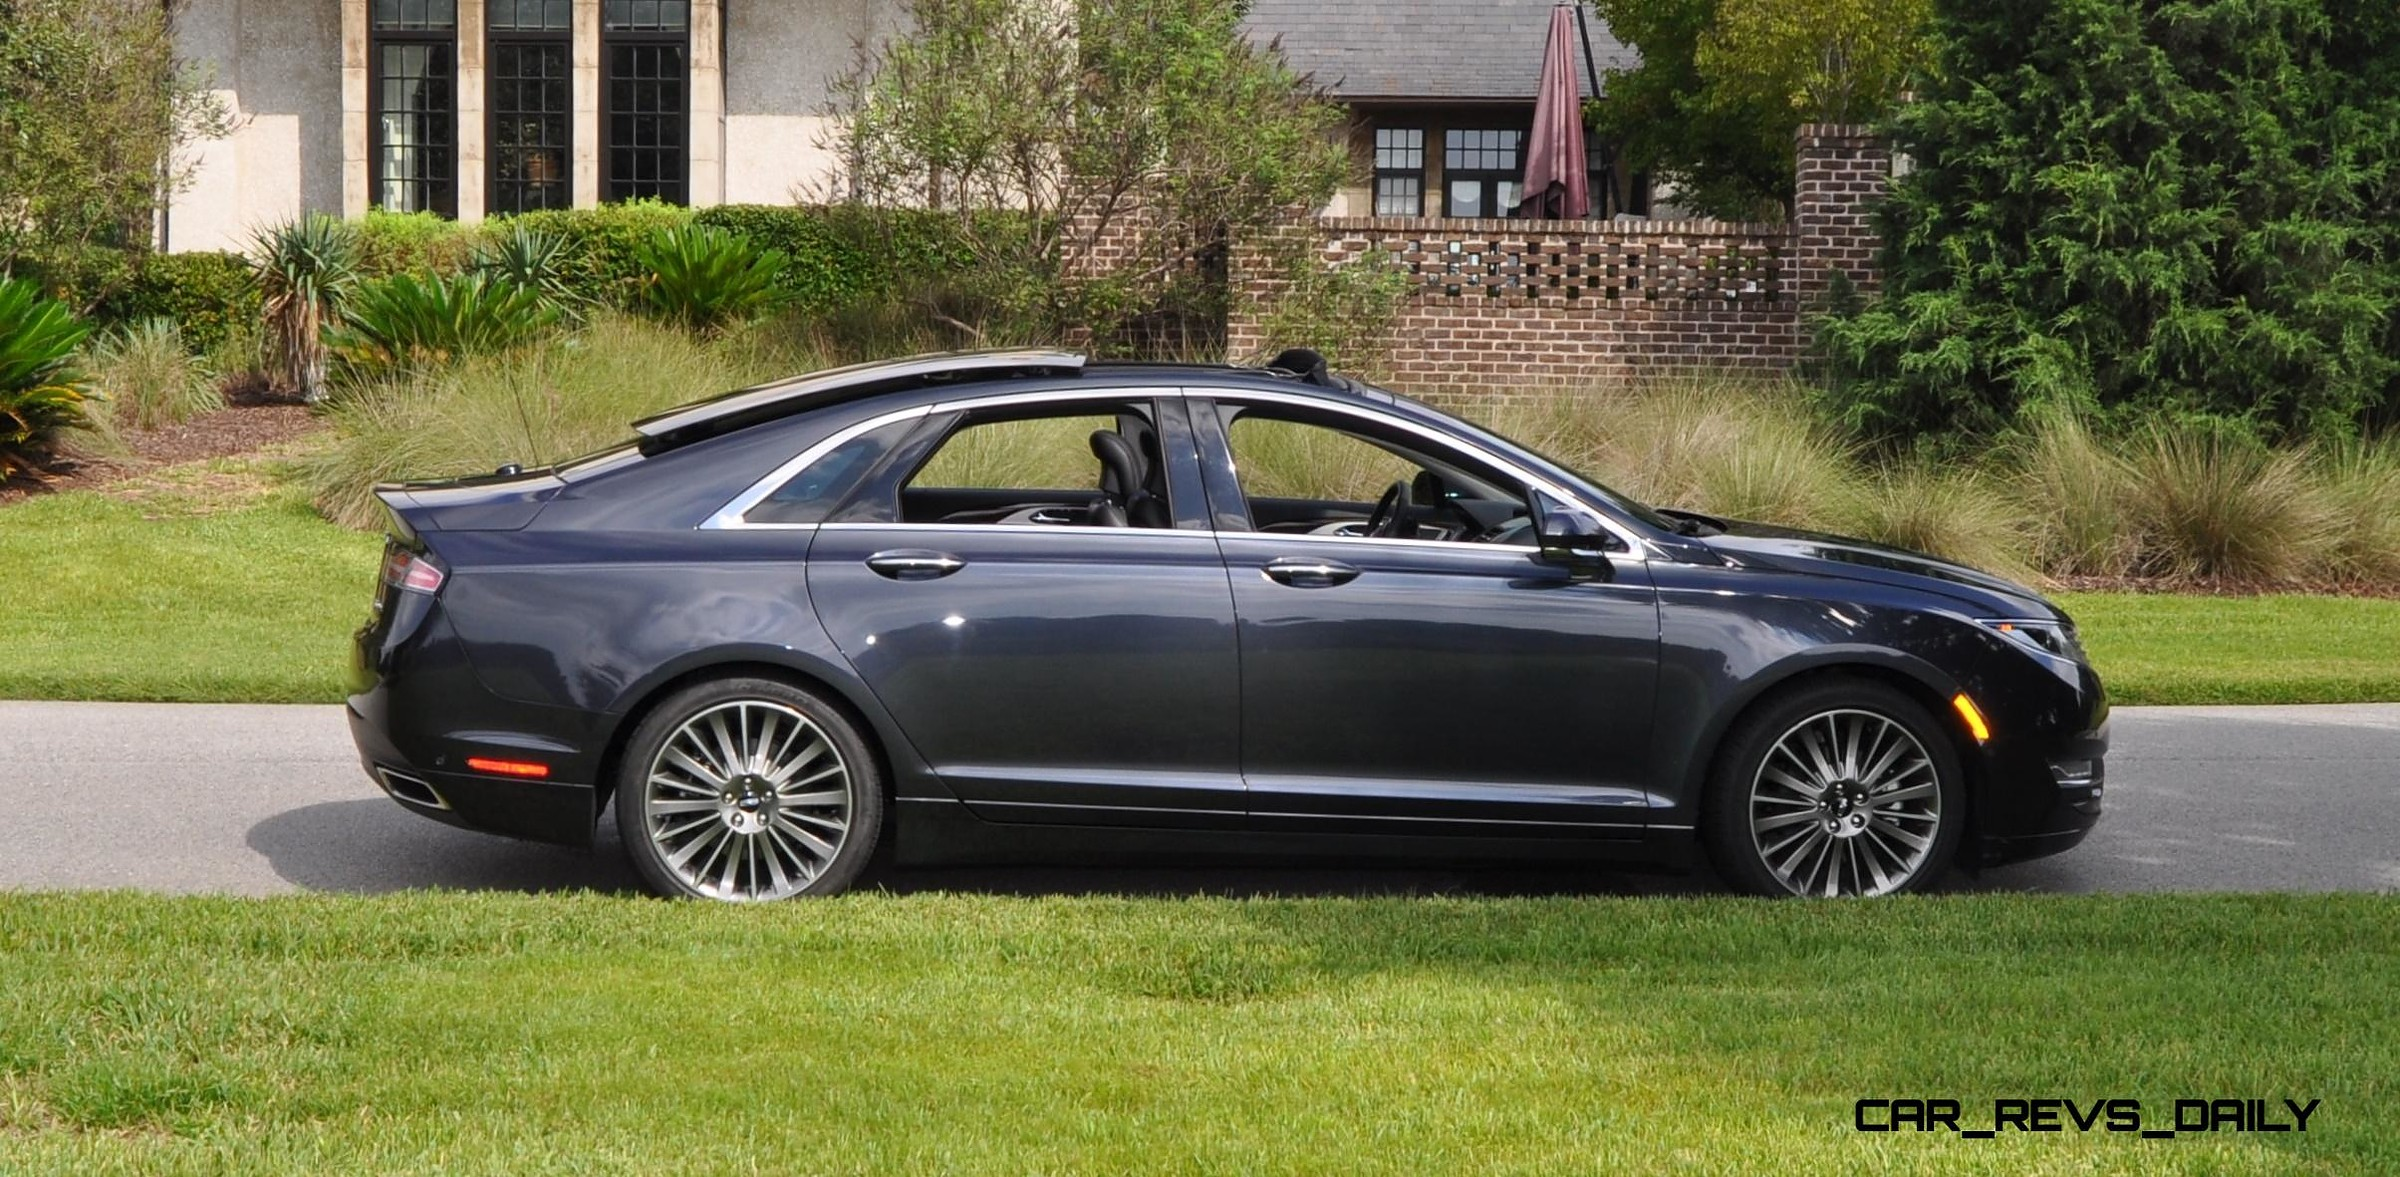 road test review 2014 lincoln mkz 3 7 awd 32. Black Bedroom Furniture Sets. Home Design Ideas